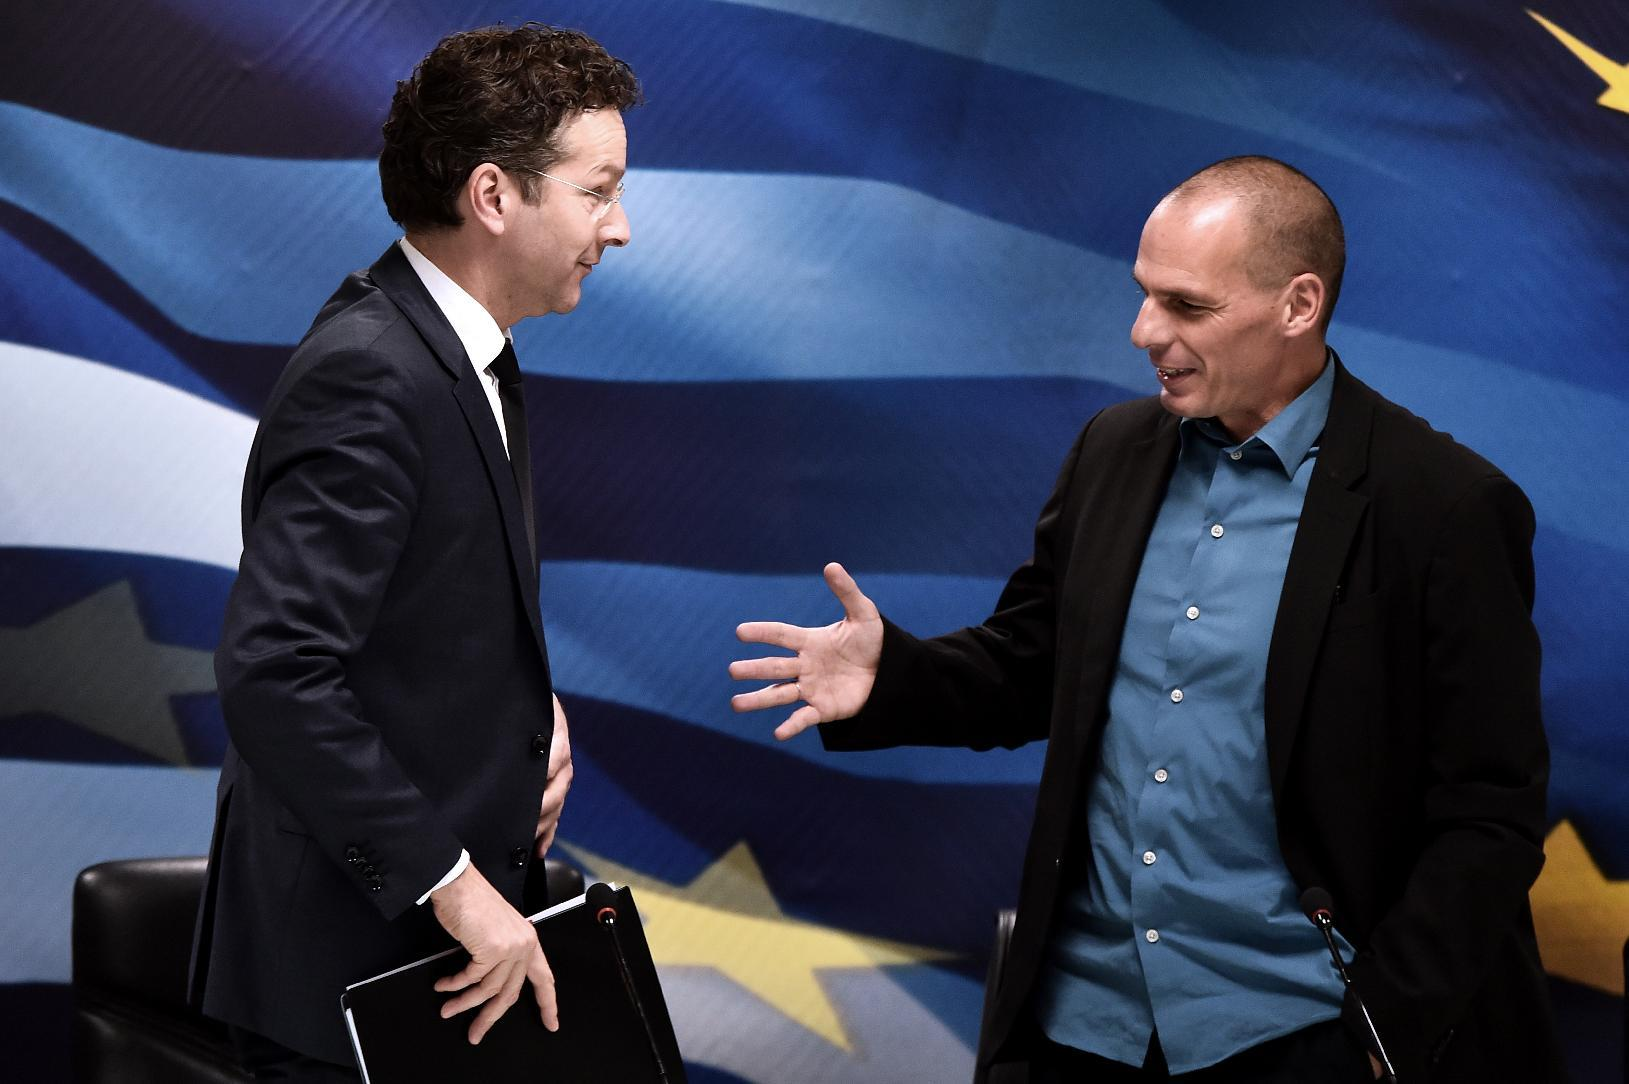 New-style Greek government breaks with past